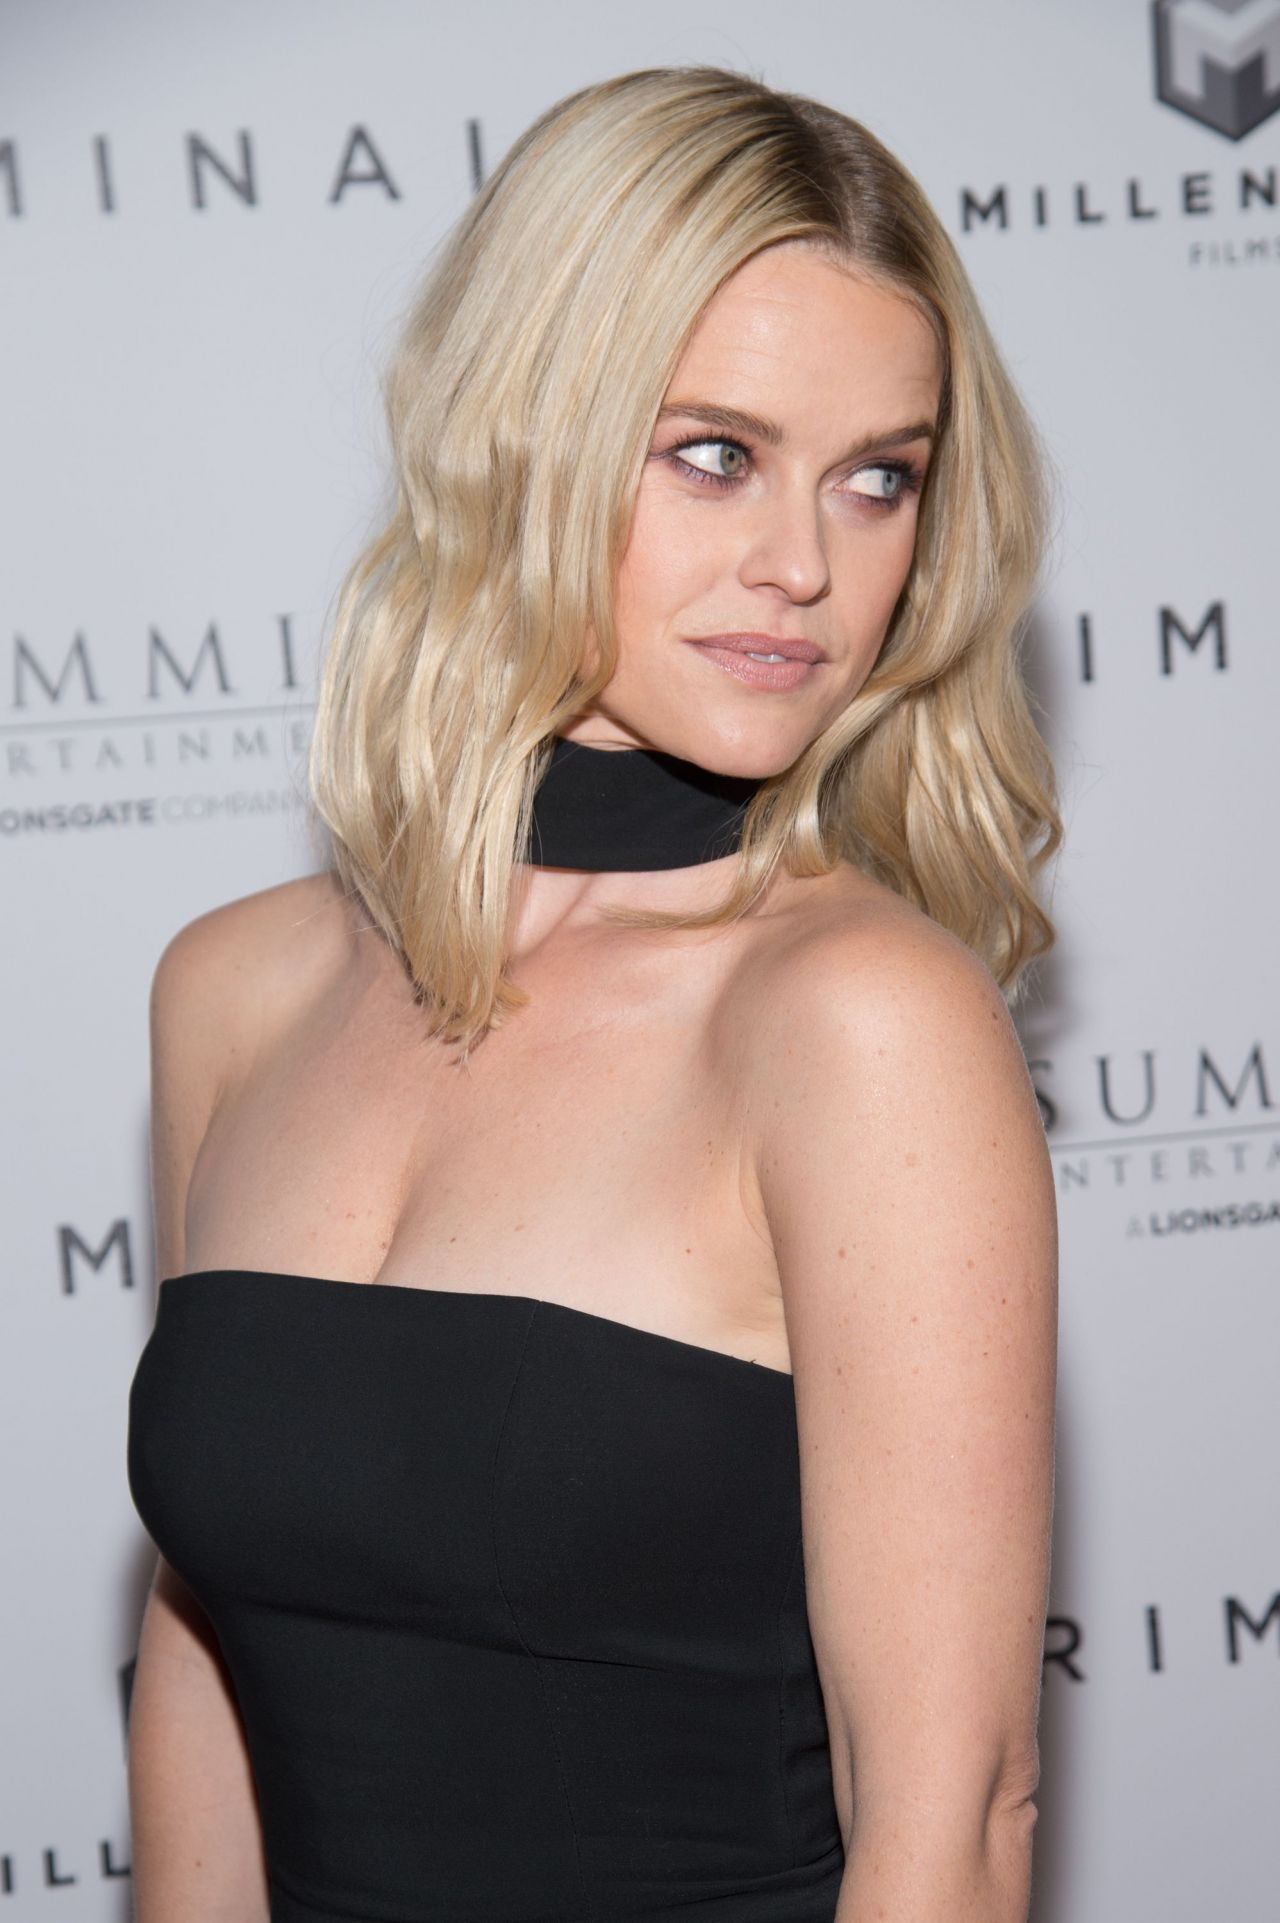 Alice Eve - Criminal Premiere In New York City 4112016-3711